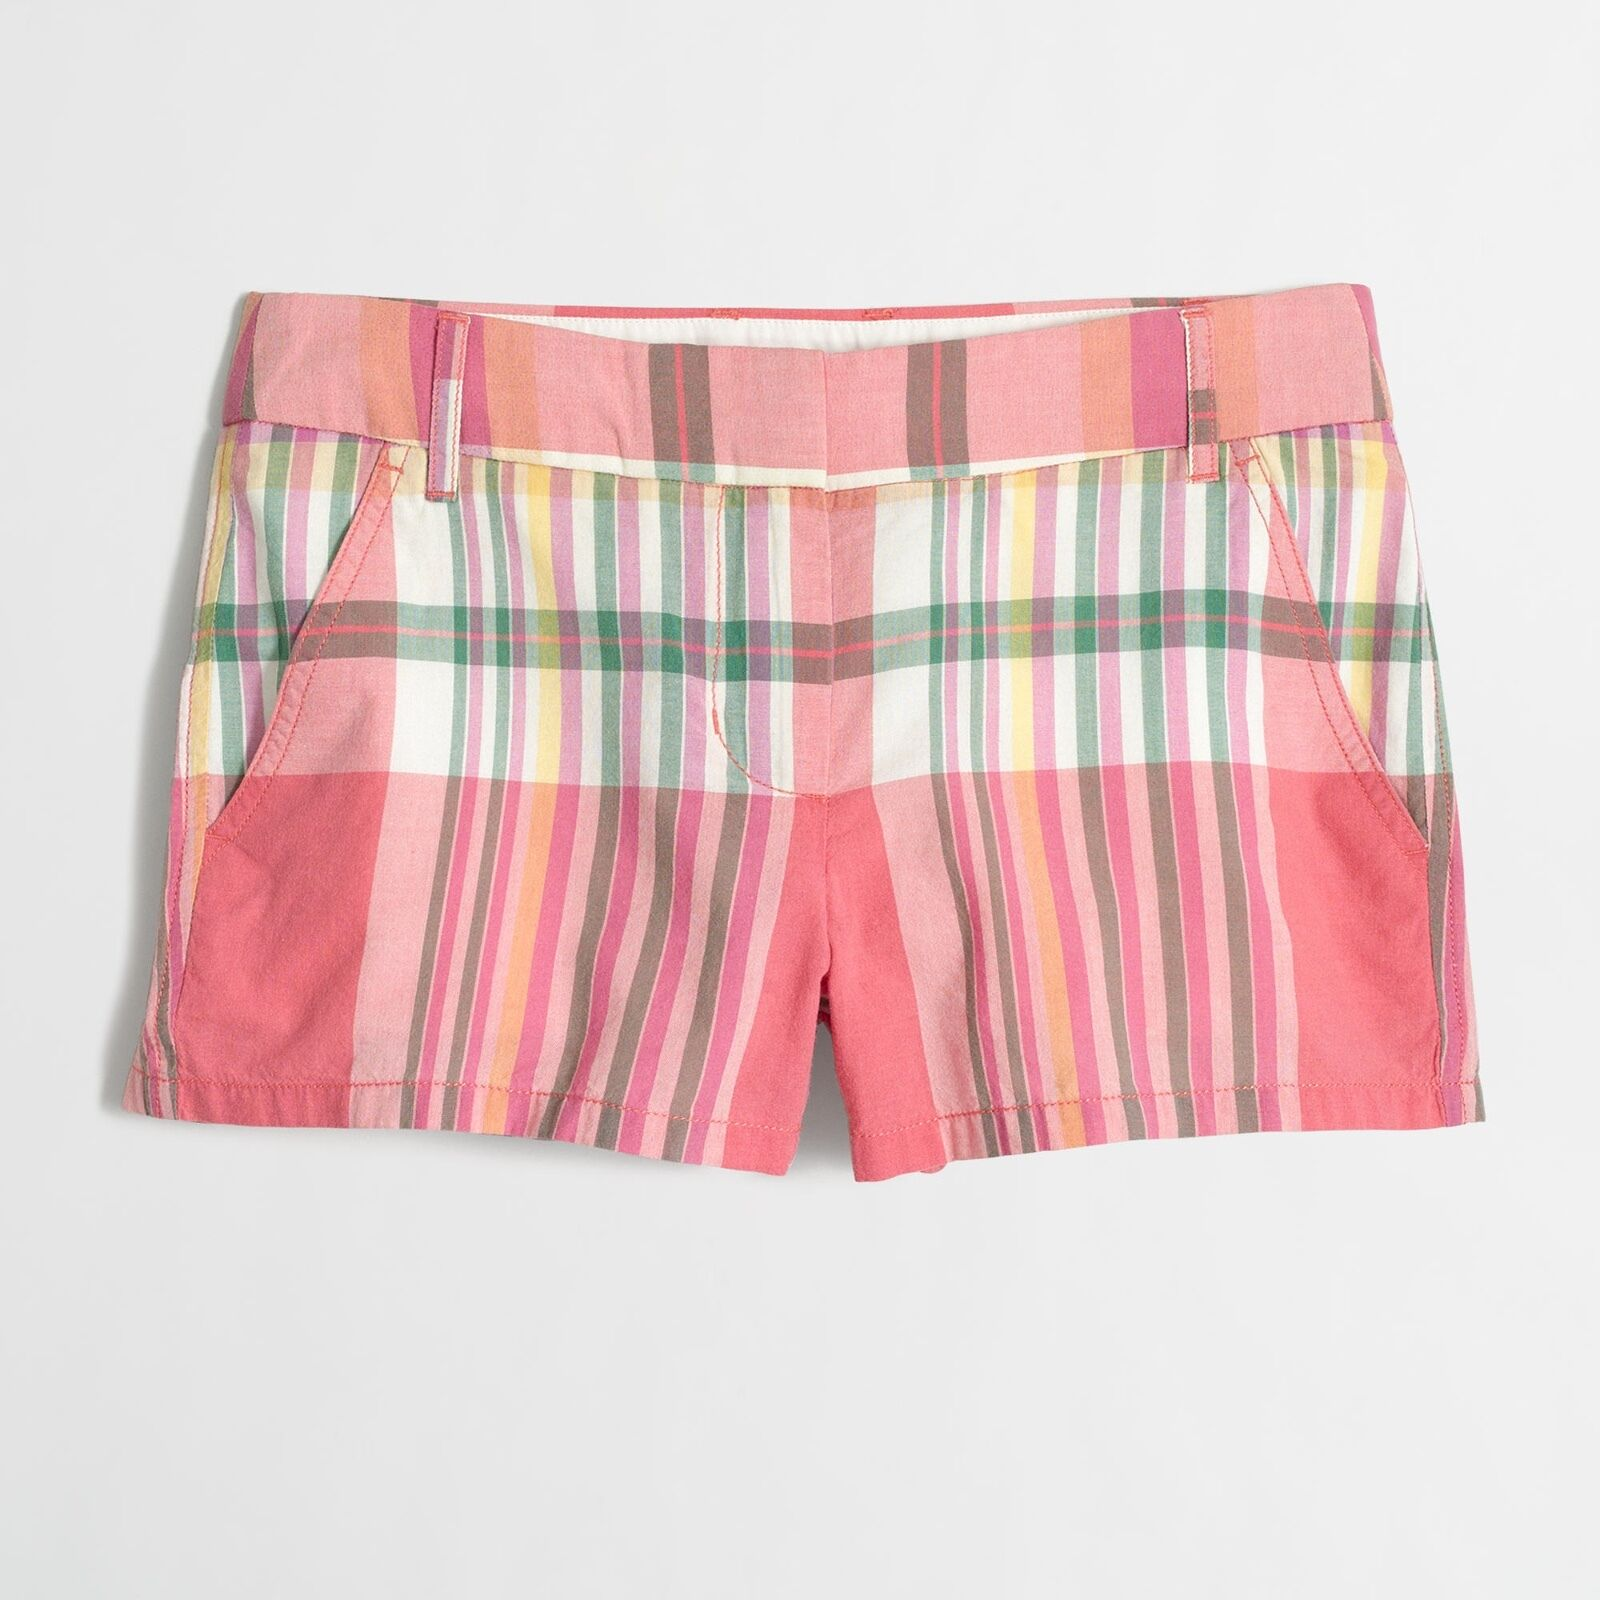 J.CREW Ladies 3  Madras Short Strawberry Plaid  Size 10  New with Tag